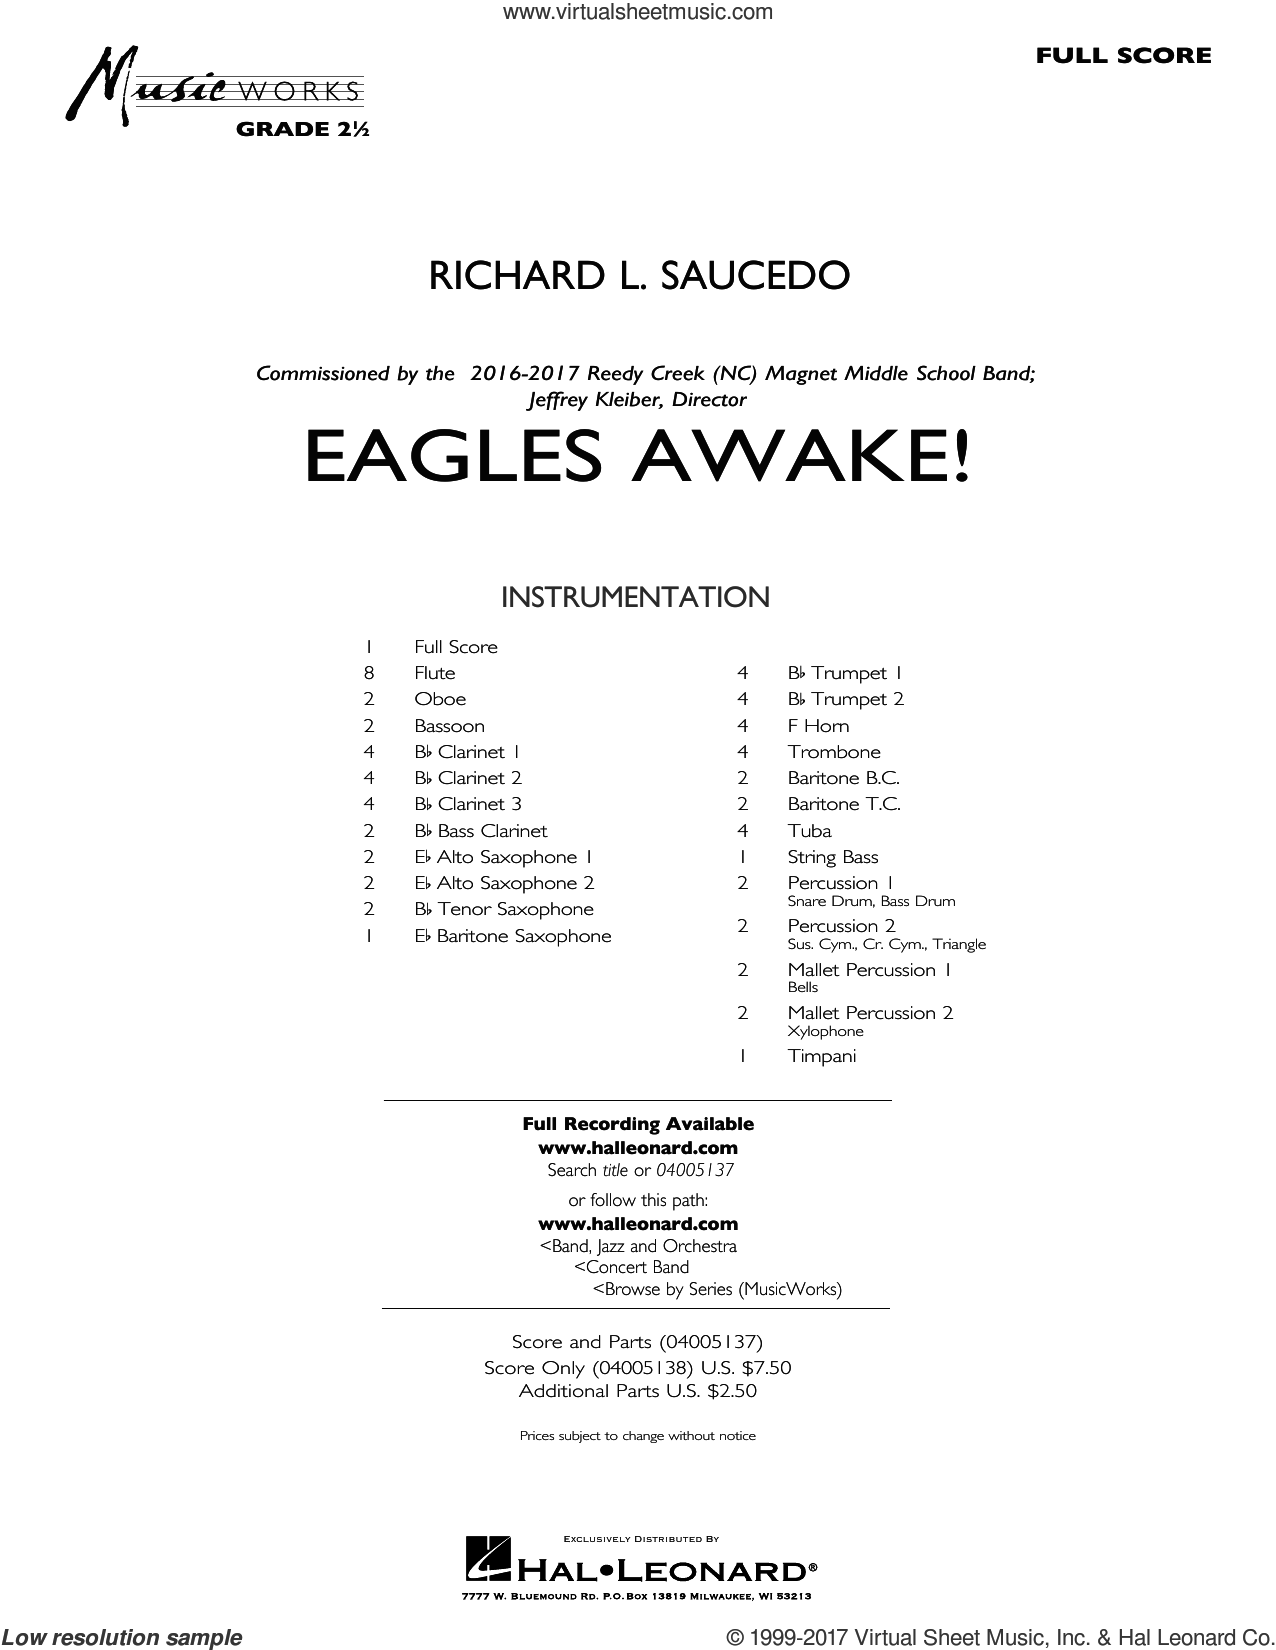 Eagles Awake! (COMPLETE) sheet music for concert band by Richard L. Saucedo, intermediate. Score Image Preview.